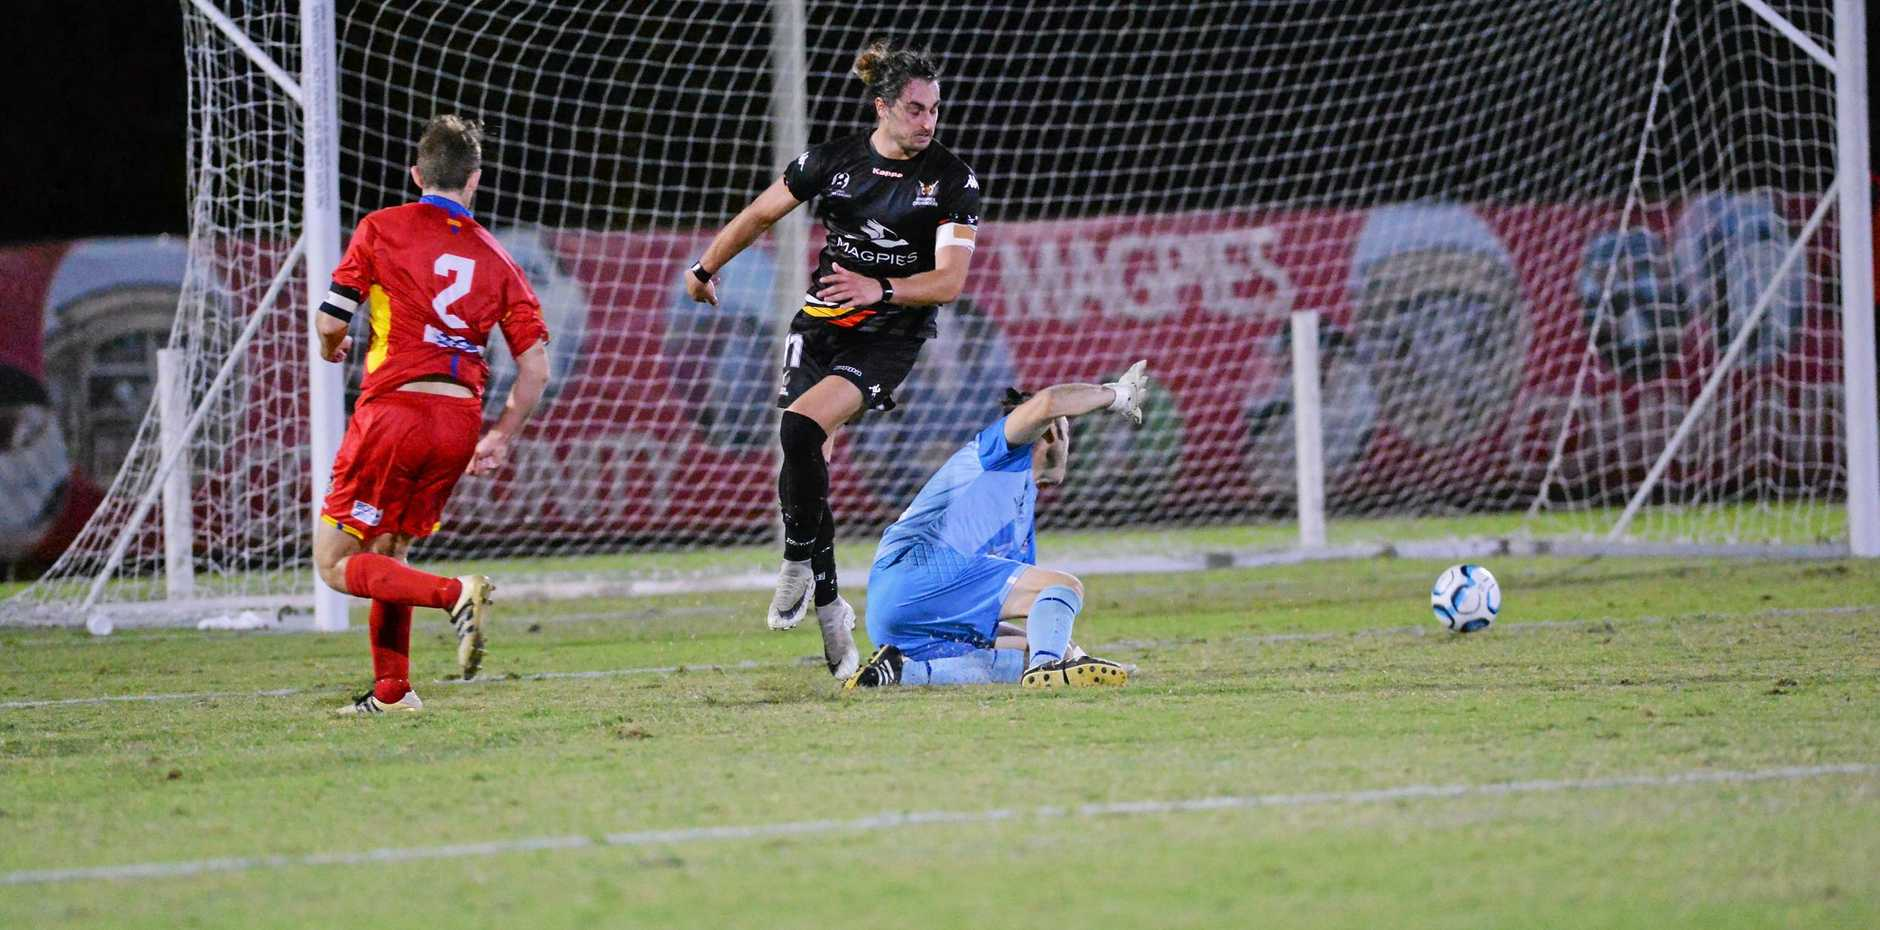 Magpies Crusaders striker Kyle Markham puts a shot past NQ United goalkeeper Daniel Wilesmith in round 15 of the NPL Queensland at Sologinkin Oval, Mackay.